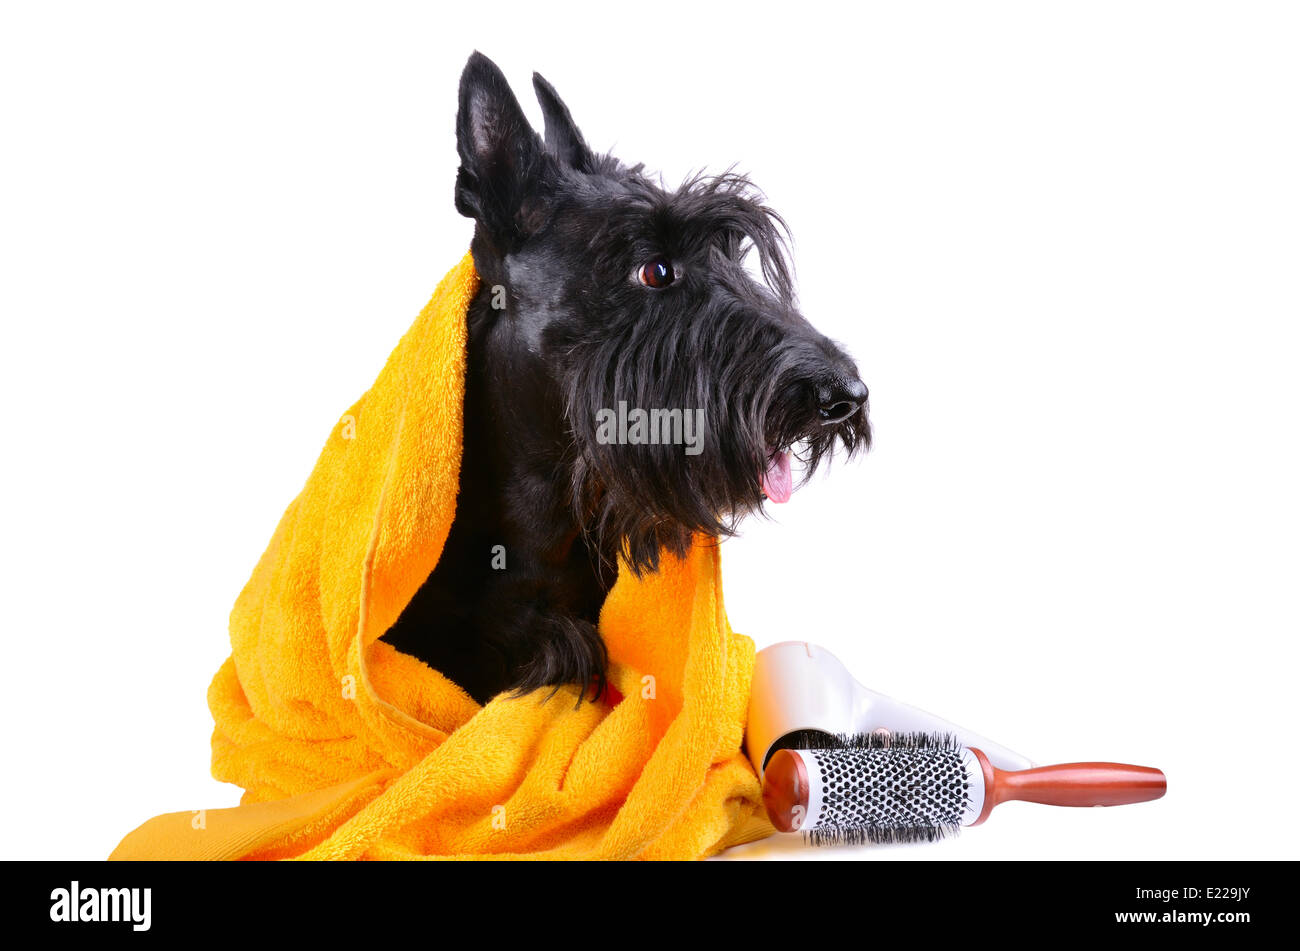 Dog after bath - Stock Image